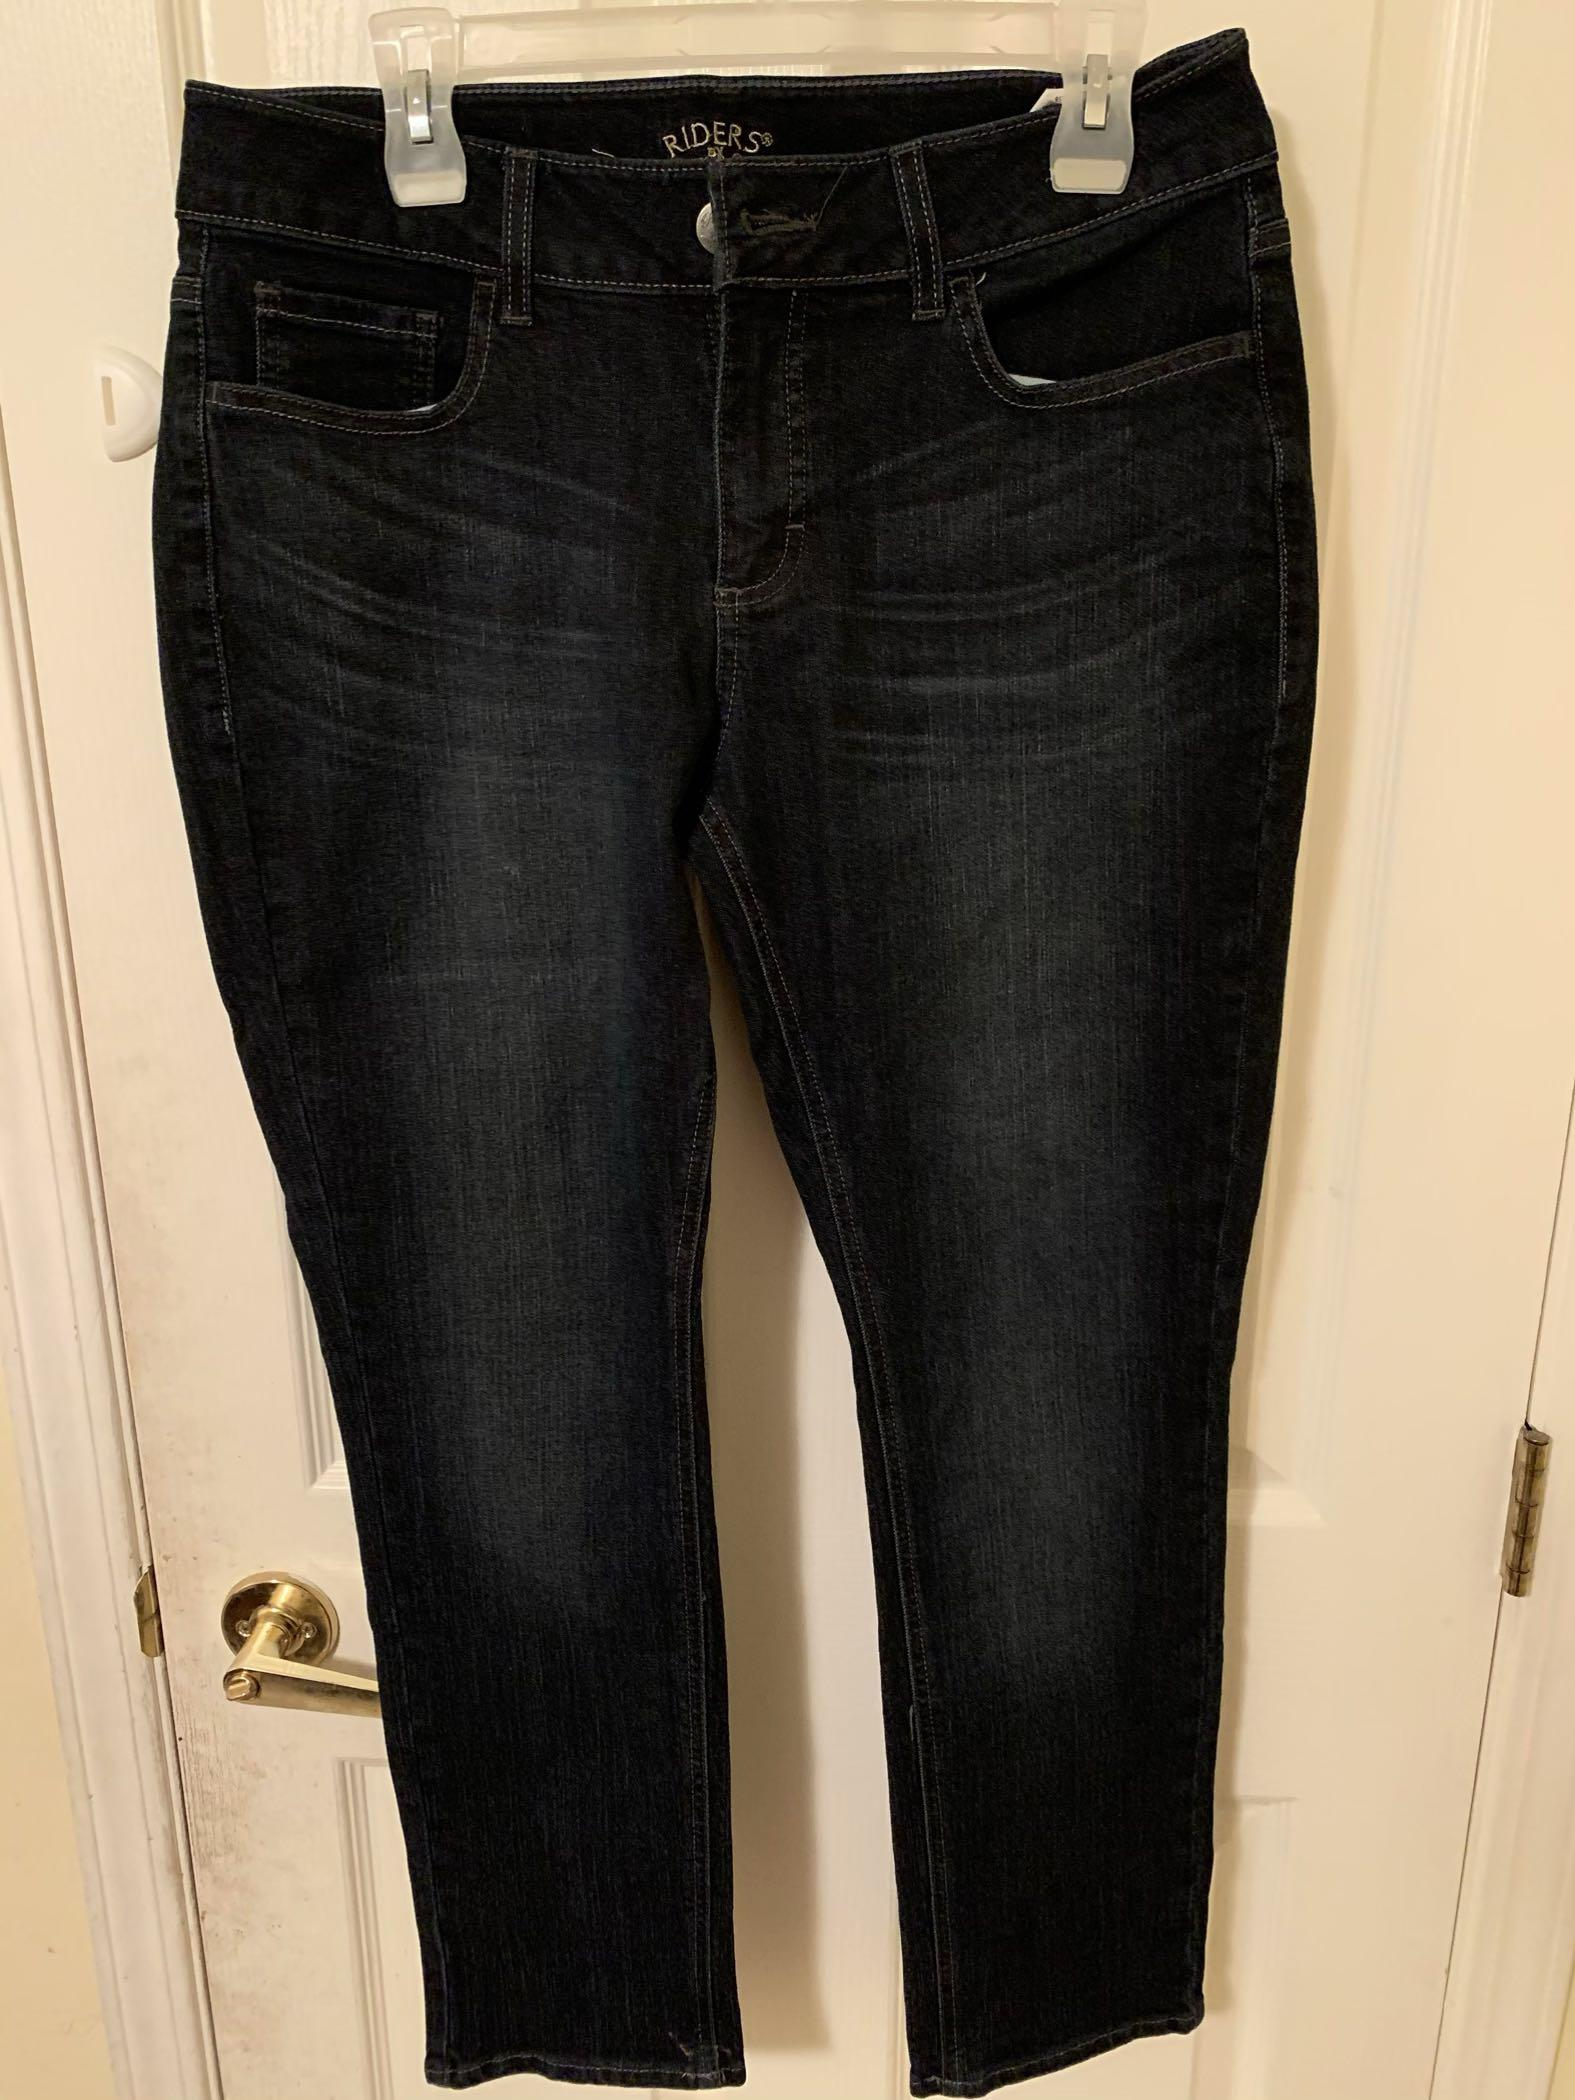 New Lee Riders jeans